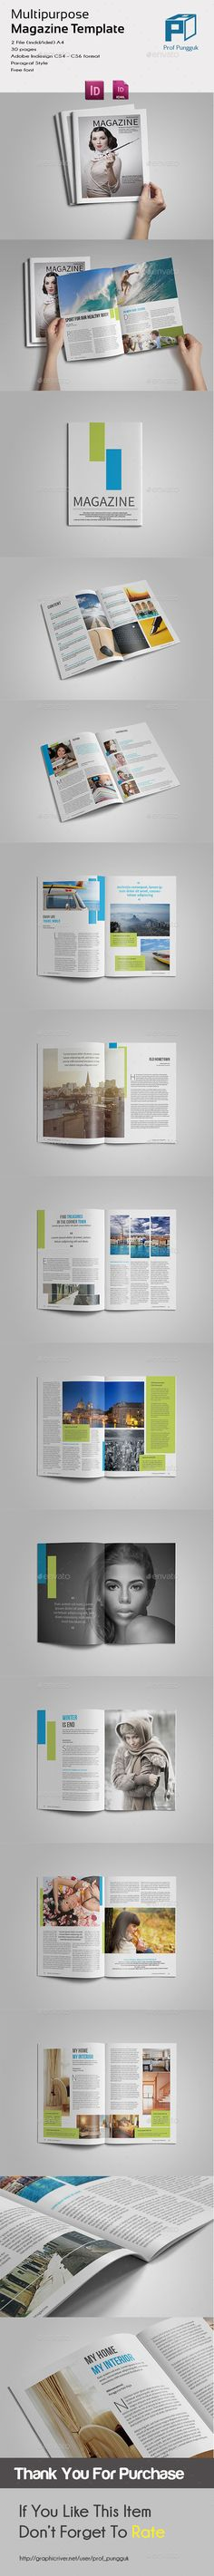 Simple Multipurpose Magazine by profpungguk Multipurpose MagazineThis is 24 page minimal magazine template is for designers working on multipurpose design magazines, product/